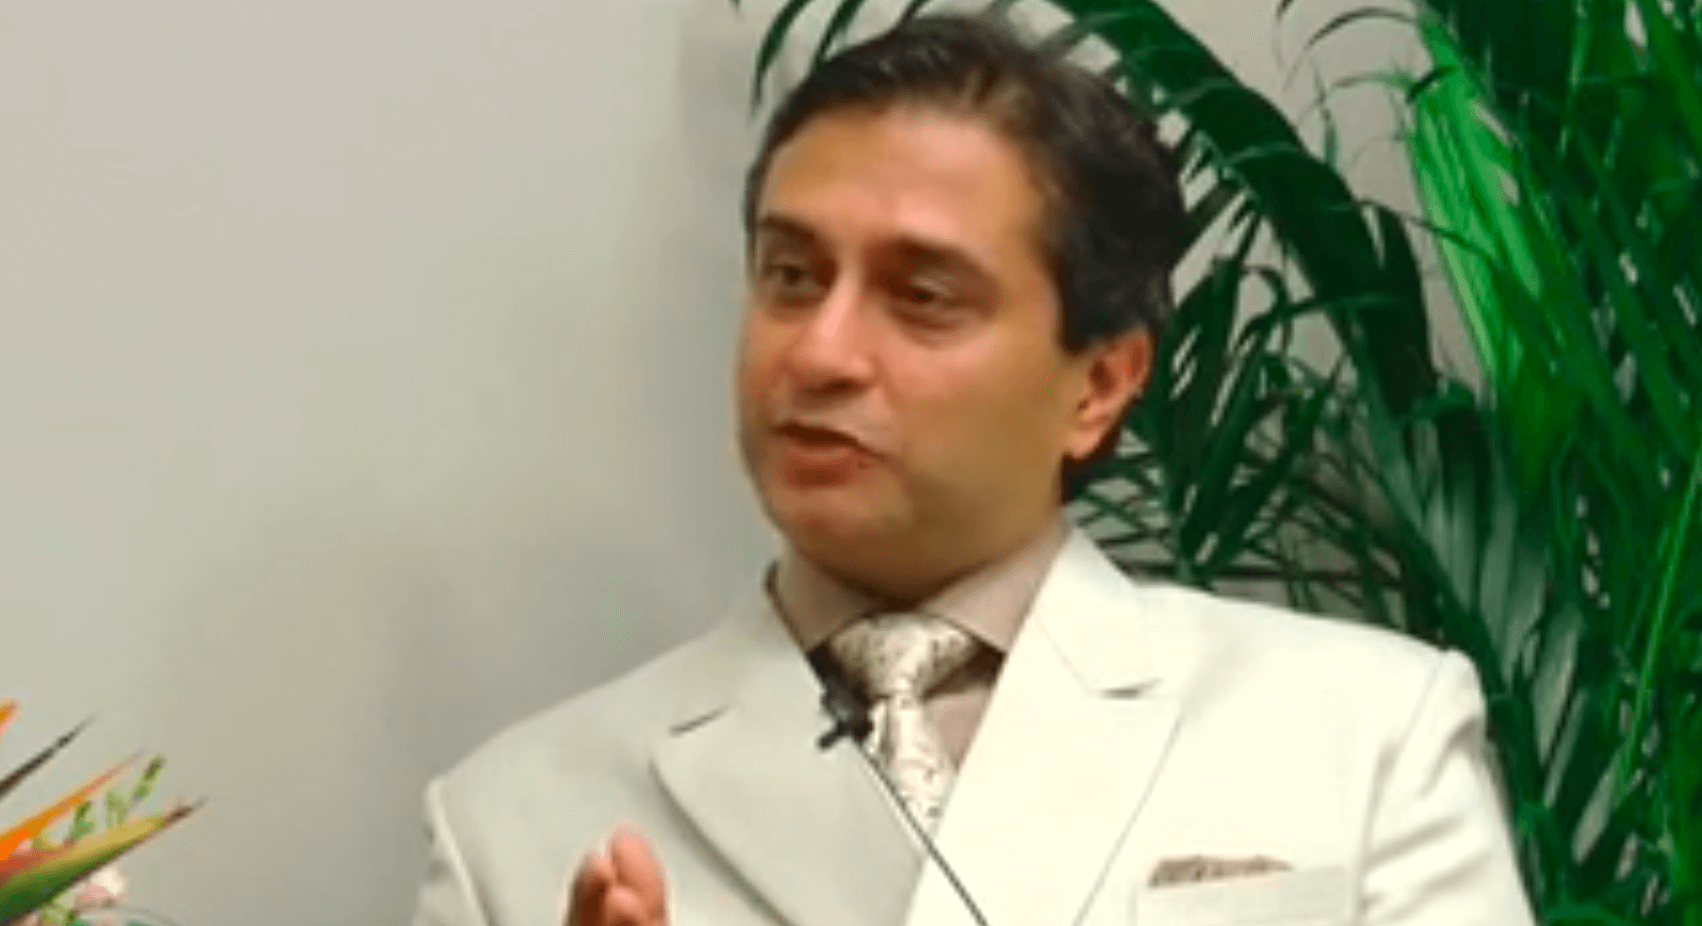 Corneal Scars to Vision: Dr. Gulani & American Academy